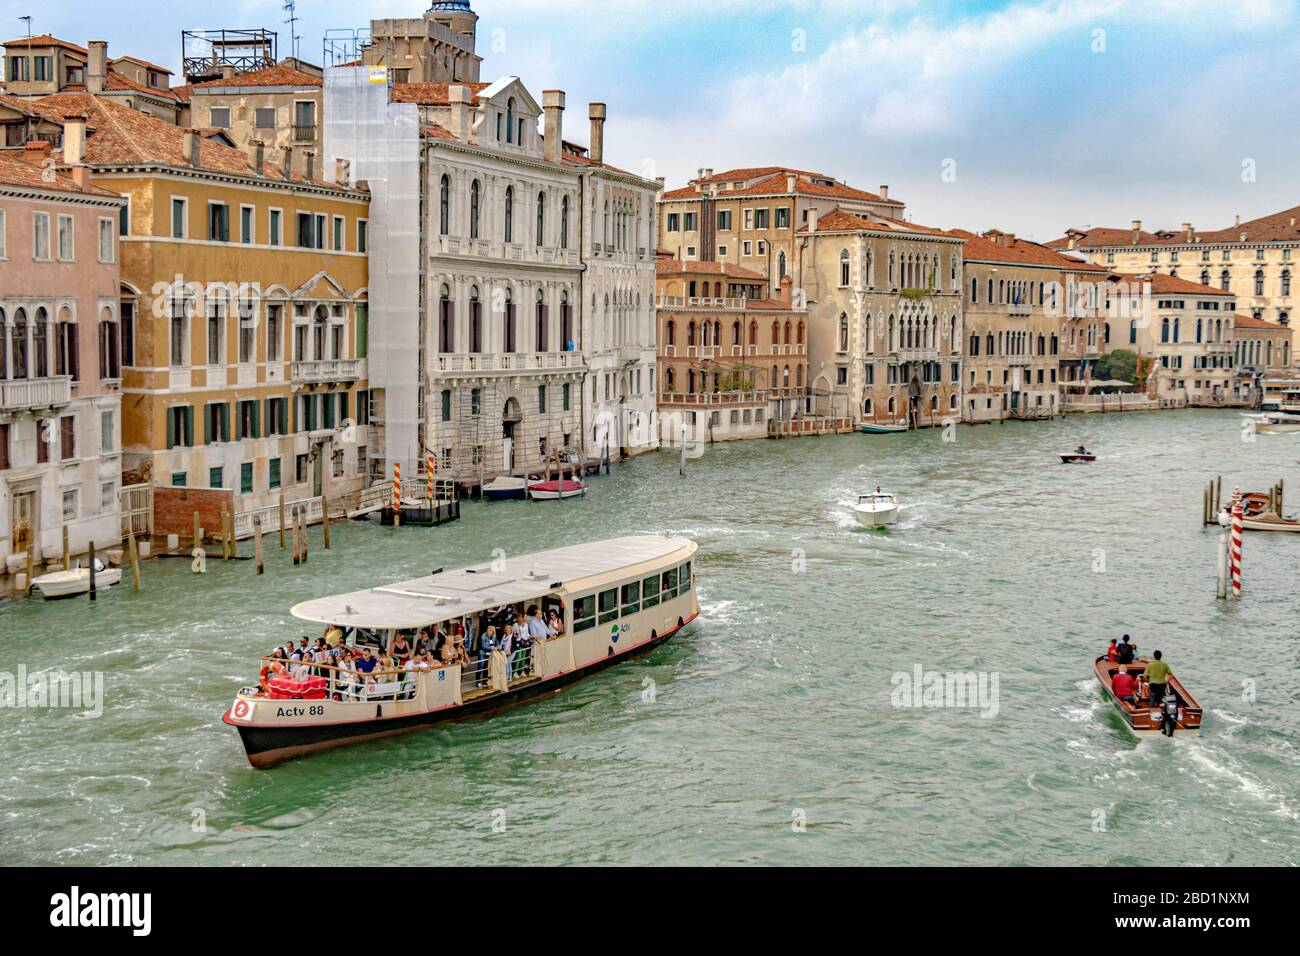 A route No 2  Vaporetto or water bus packed with passengers near Accademia on The Grand Canal in Venice,Italy Stock Photo